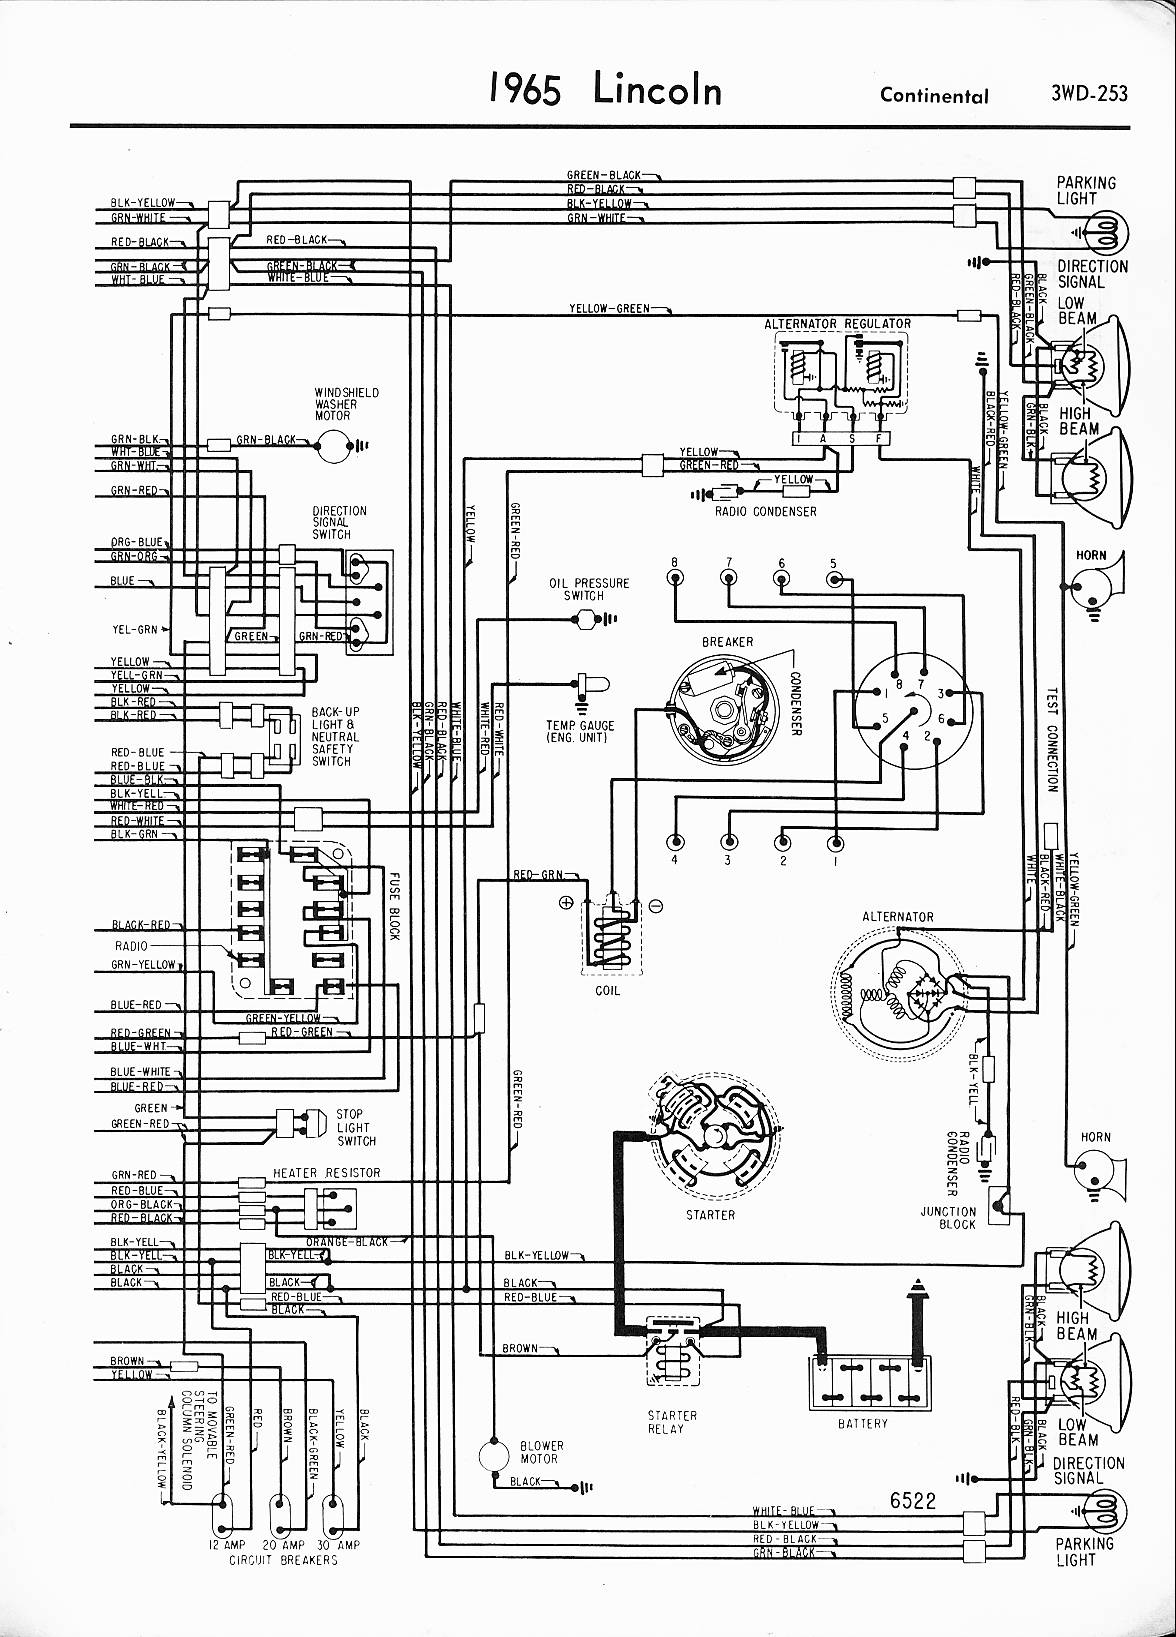 Fuel Pump Relay Location 2000 Ford Ranger furthermore Daewoo Korando Power Distribution Wiring And Circuit Diagram additionally Ford Ranger Stepside Truck Tool Box moreover 2001 Arctic Cat 250 Wiring Diagram likewise 2 3 Liter 4 Cyl Ford Firing Order. on 2005 ford explorer wiring diagrams free